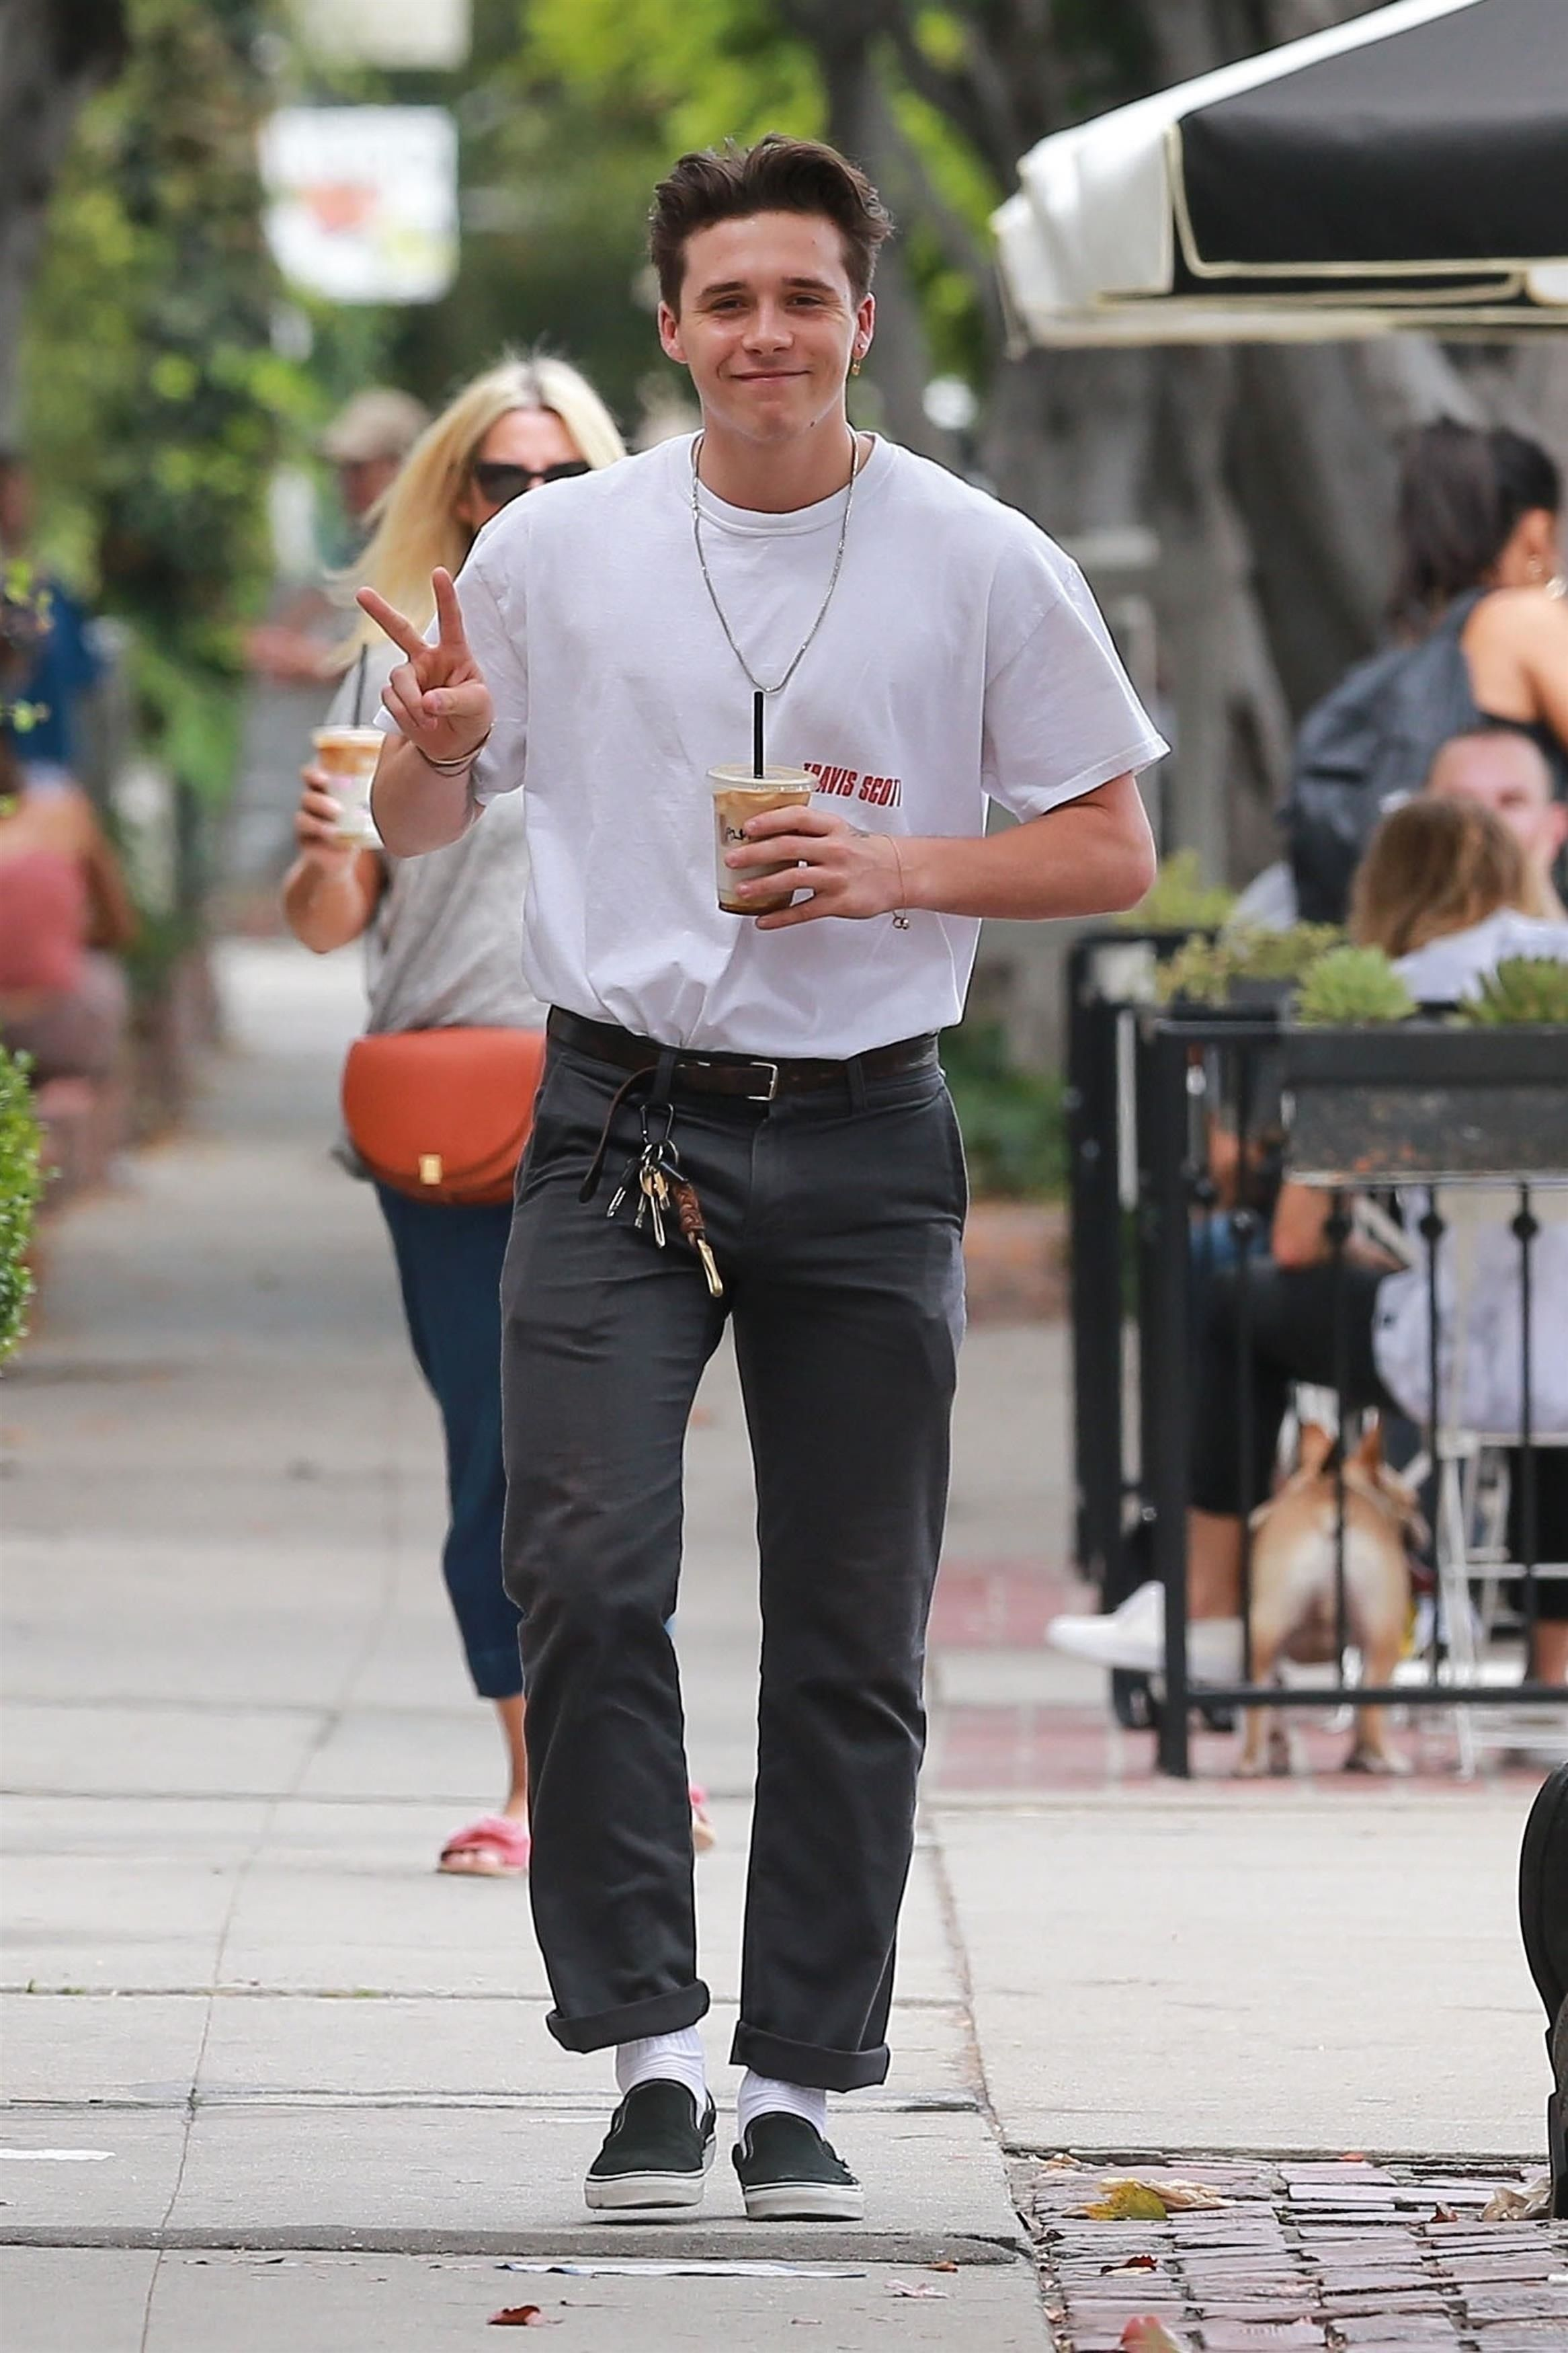 72adfdd57d Brooklyn Beckham wearing Vans Authentic Chino Pants